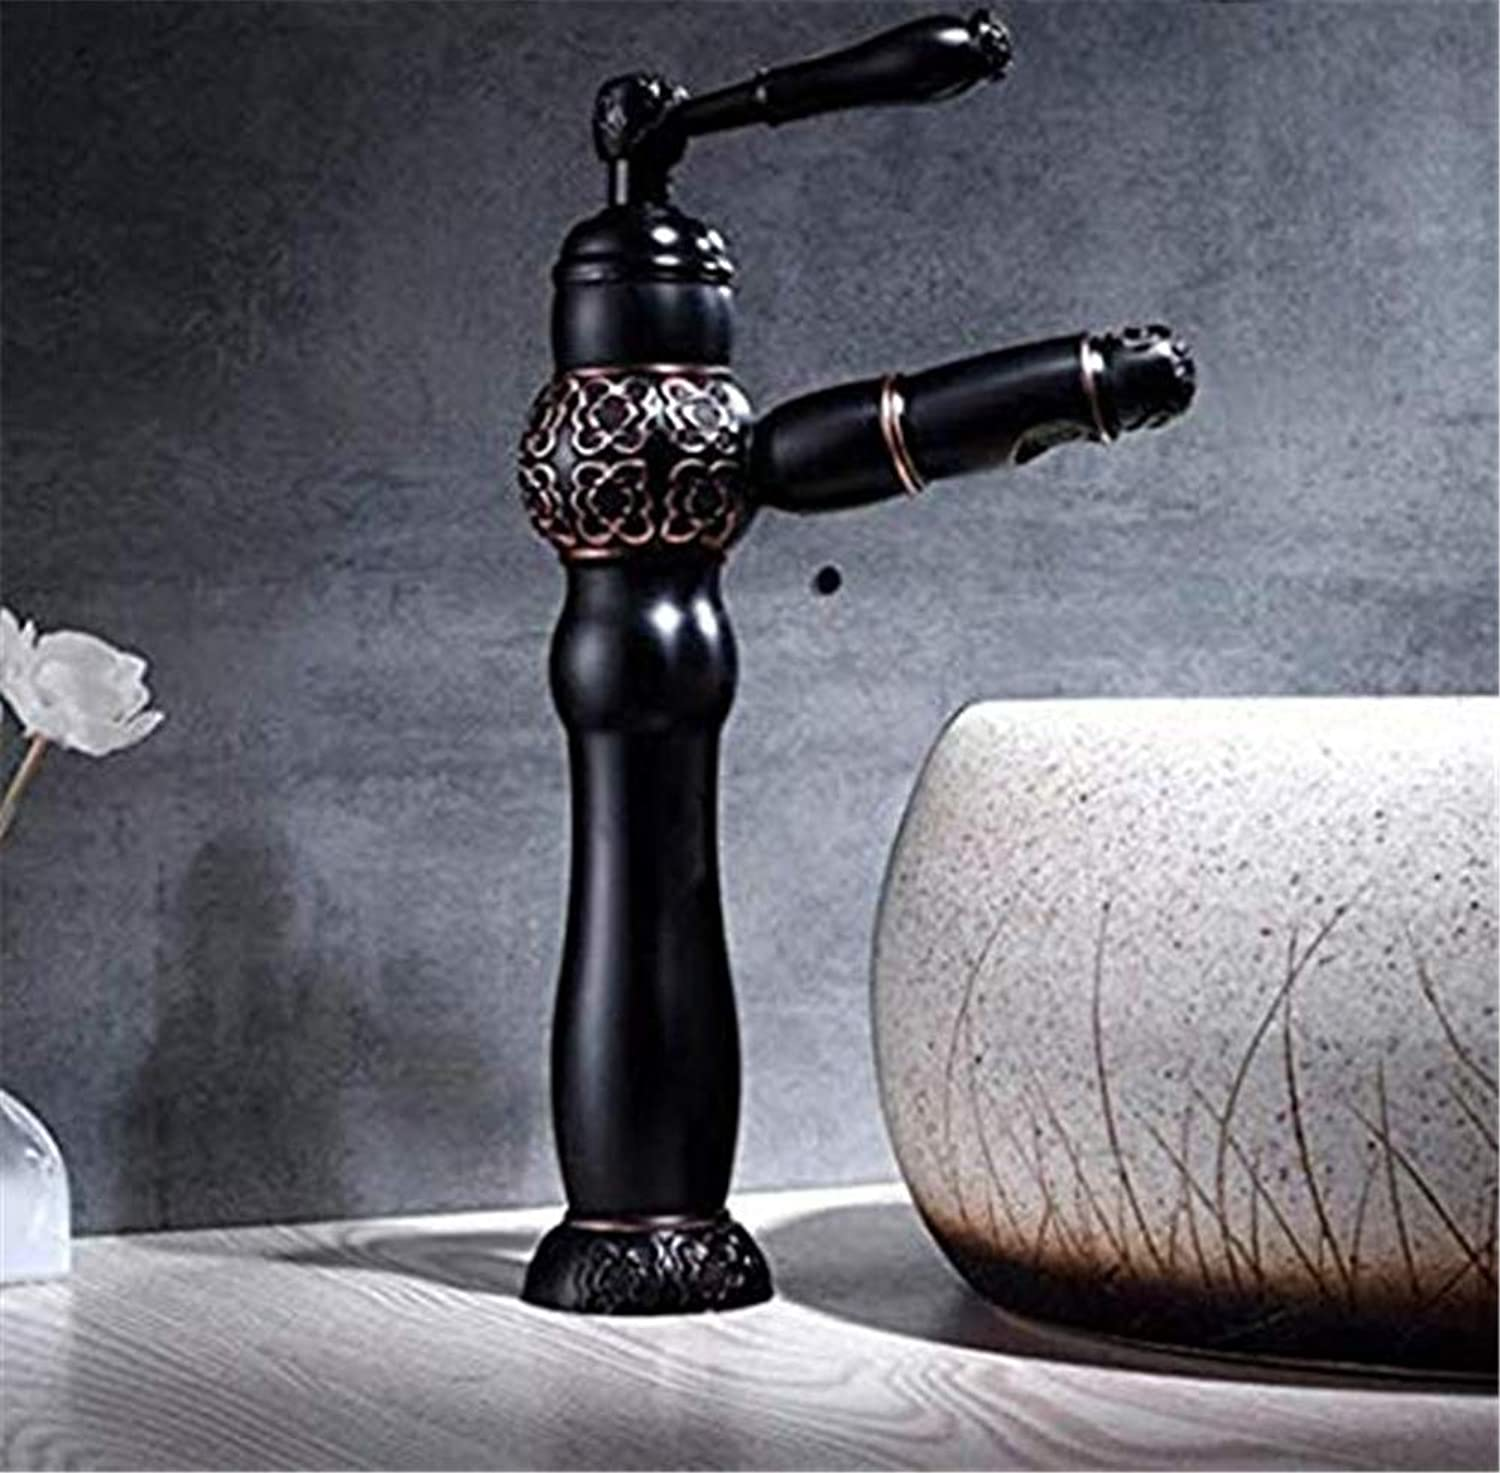 redOOY Taps New Basin Faucets Pull Out Black Bathroom Sink Crane Copper Sink Wc Mixer Faucet Hot And Cold Deck Mounted Bathroom Faucet Taps